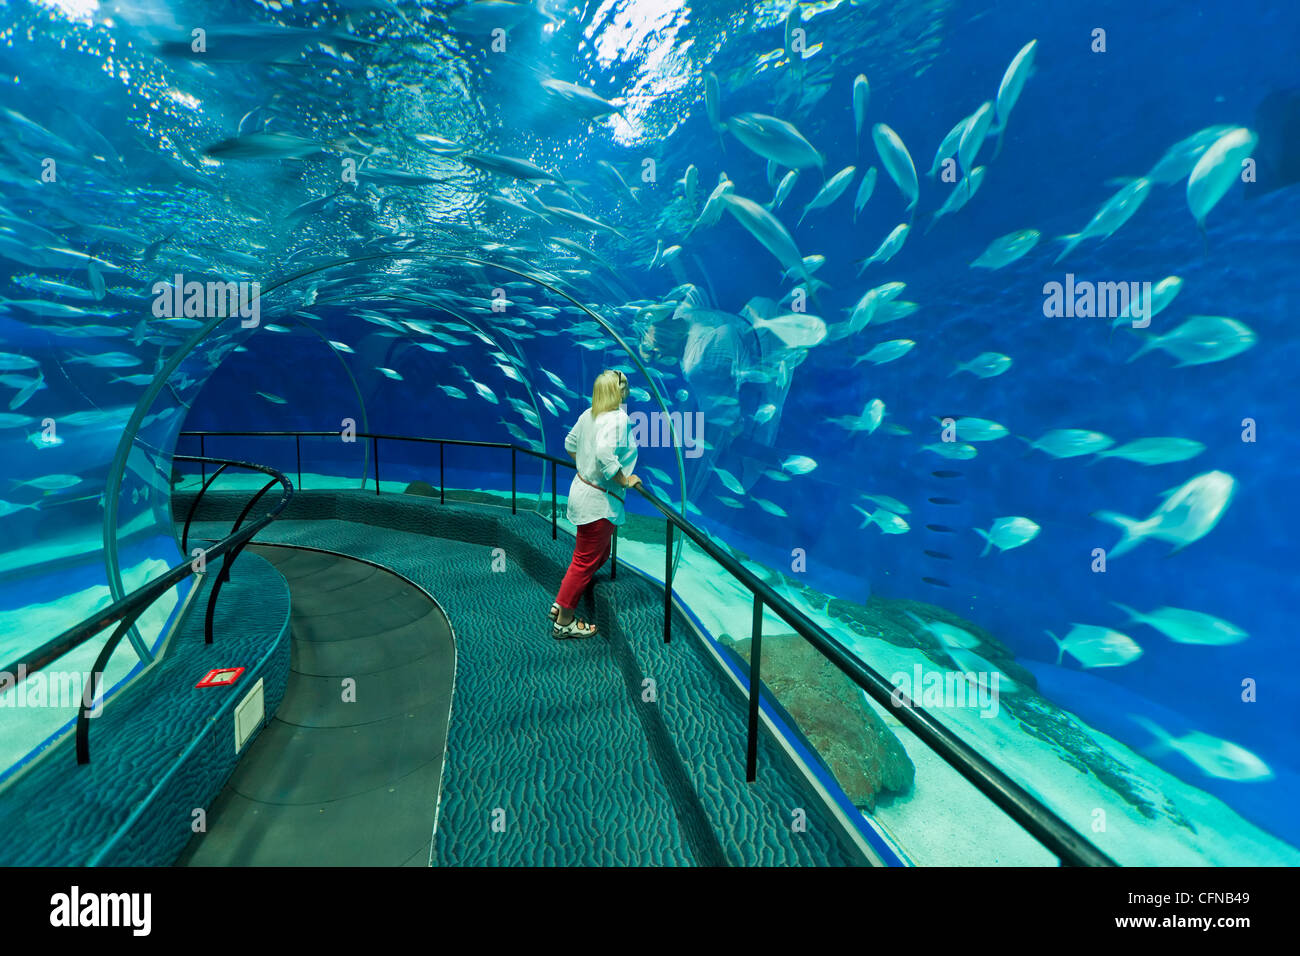 Weibliche Touristen am Ocean Aquarium, Shanghai, China, Asien Stockbild